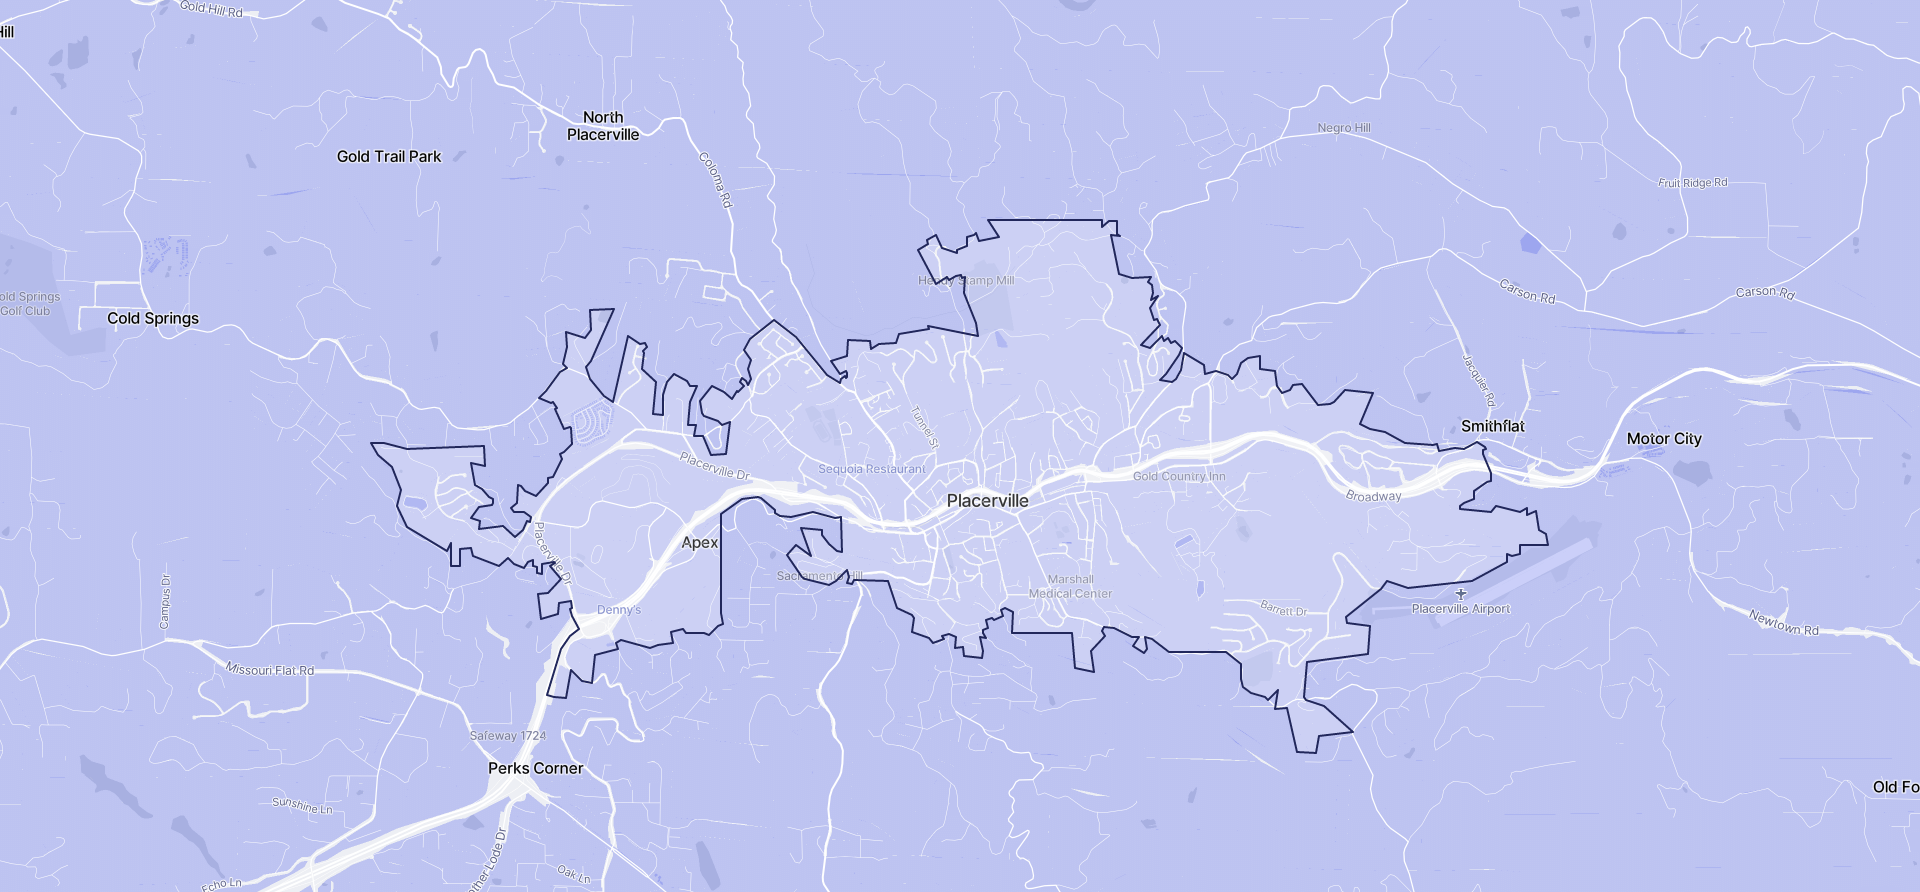 Image of Placerville boundaries on a map.